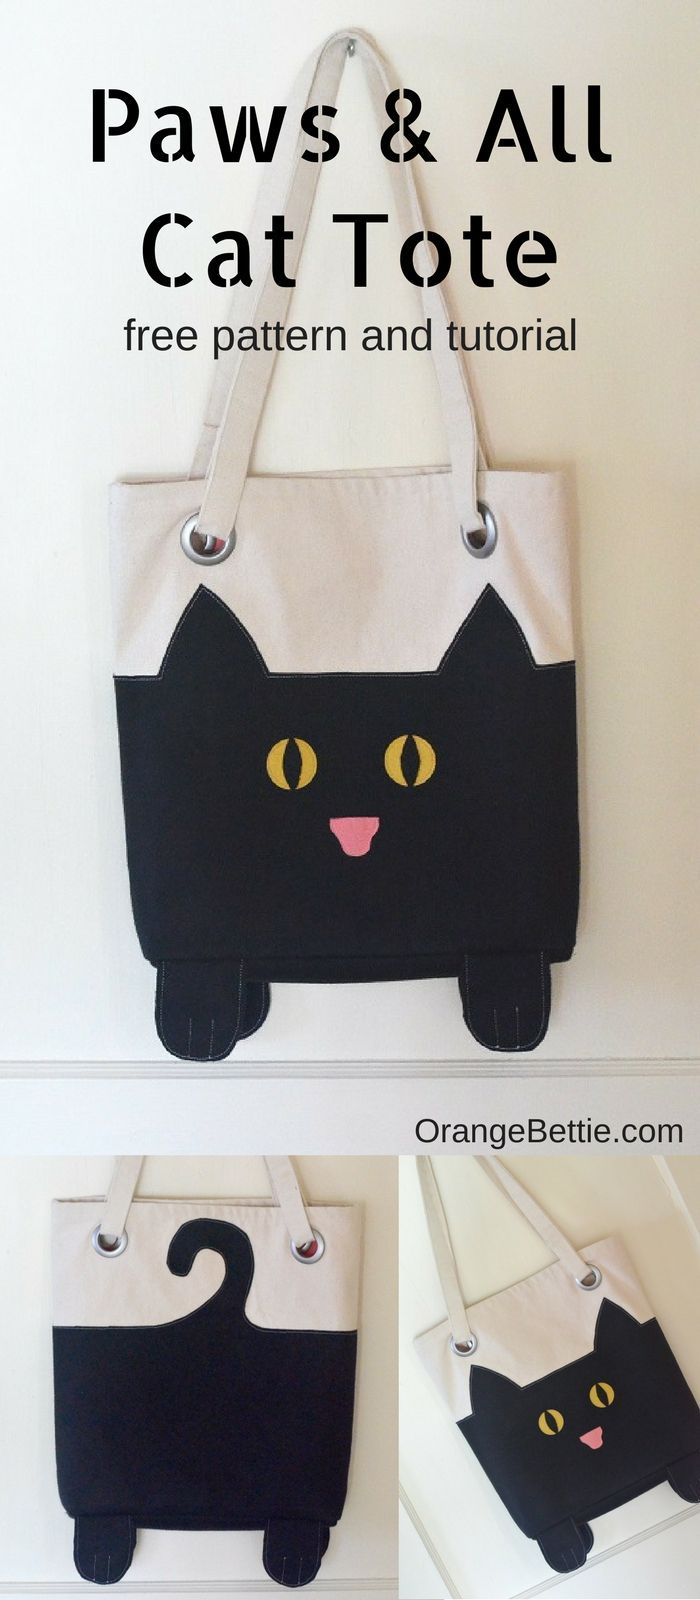 Paws And All Cat Tote - free sewing pattern - What more to say other than we just LOVE cool stuff!